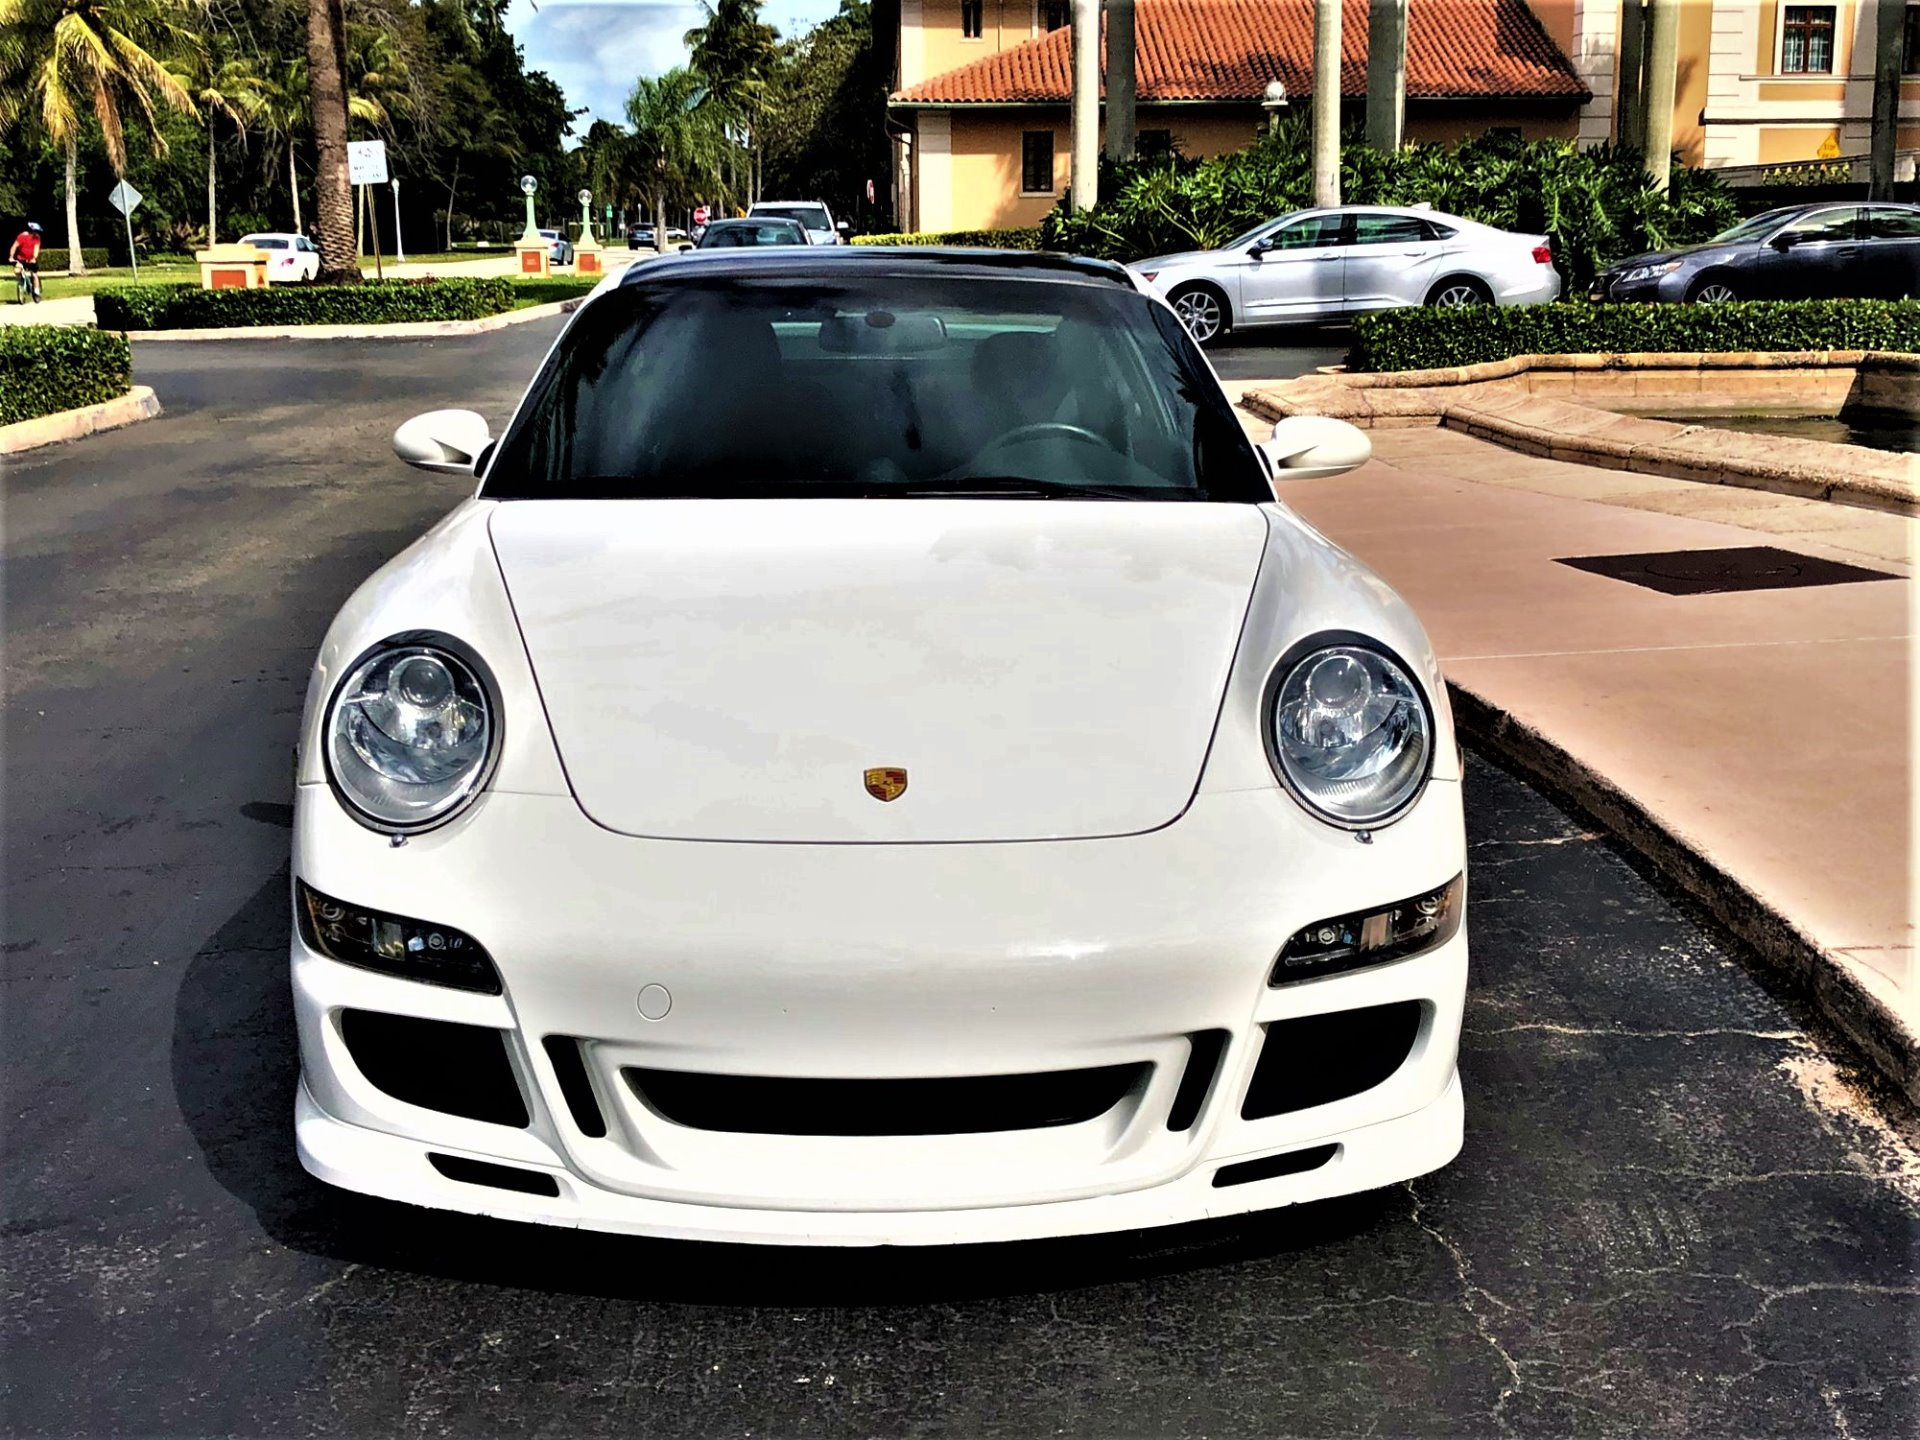 Used 2007 Porsche 911 Carrera S for sale Sold at The Gables Sports Cars in Miami FL 33146 4